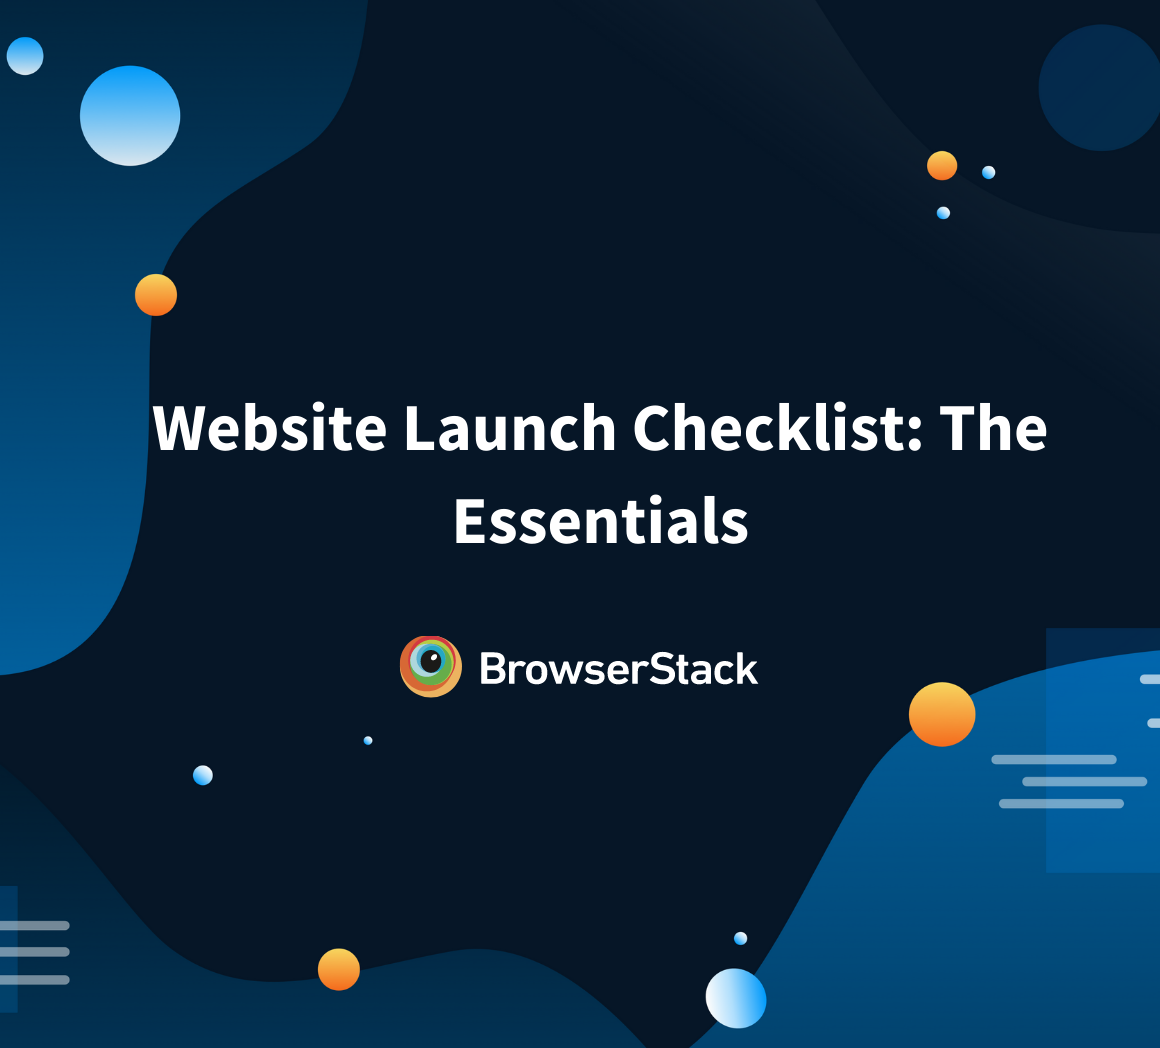 Checklist for launching websites